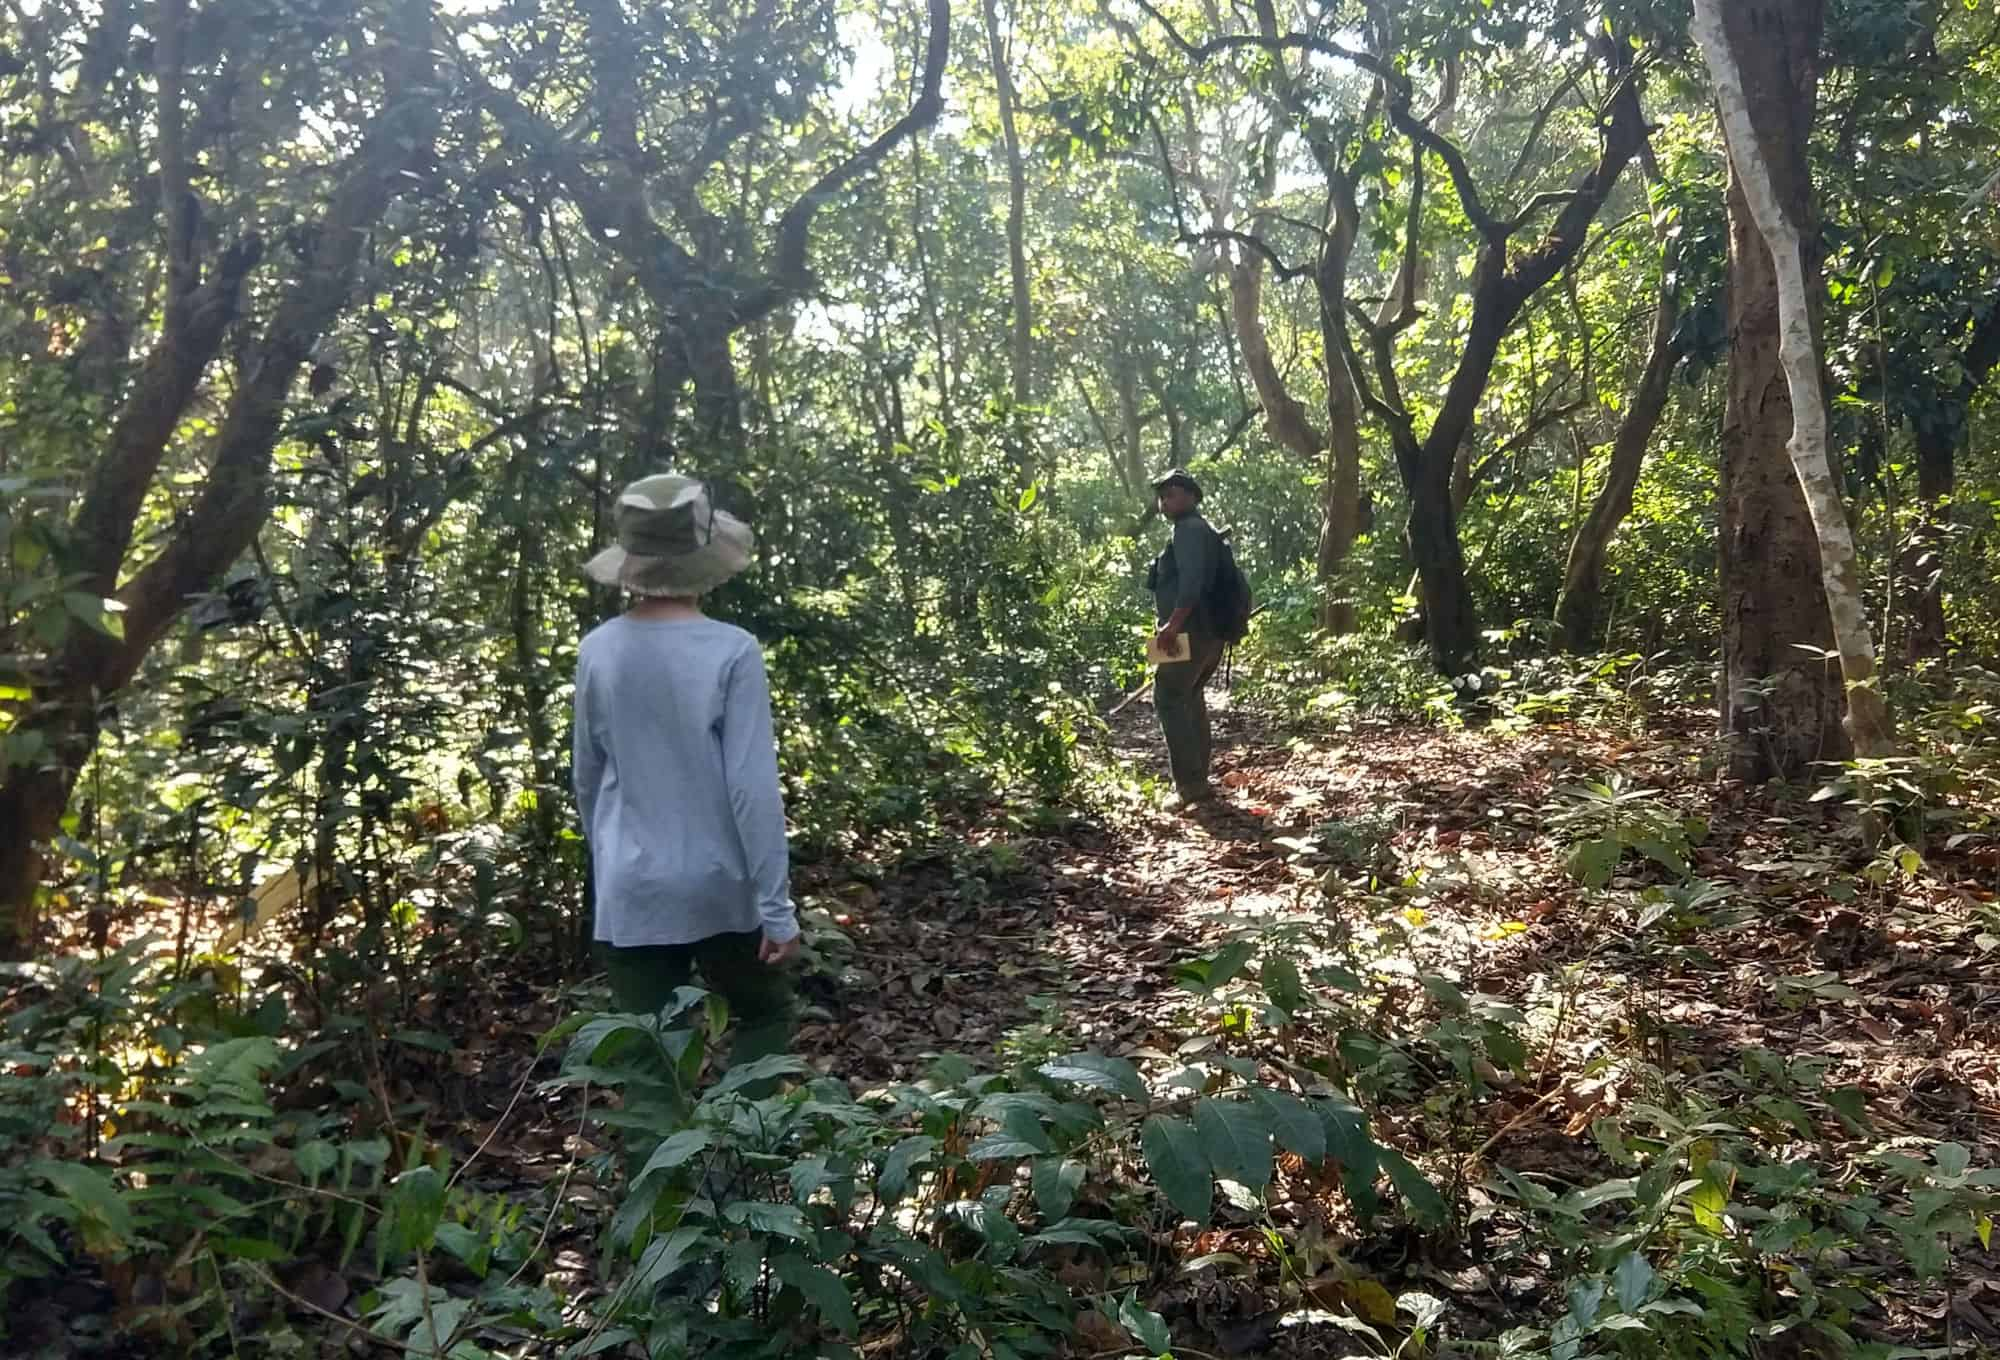 Walking tour in the forest with guide Chitwan